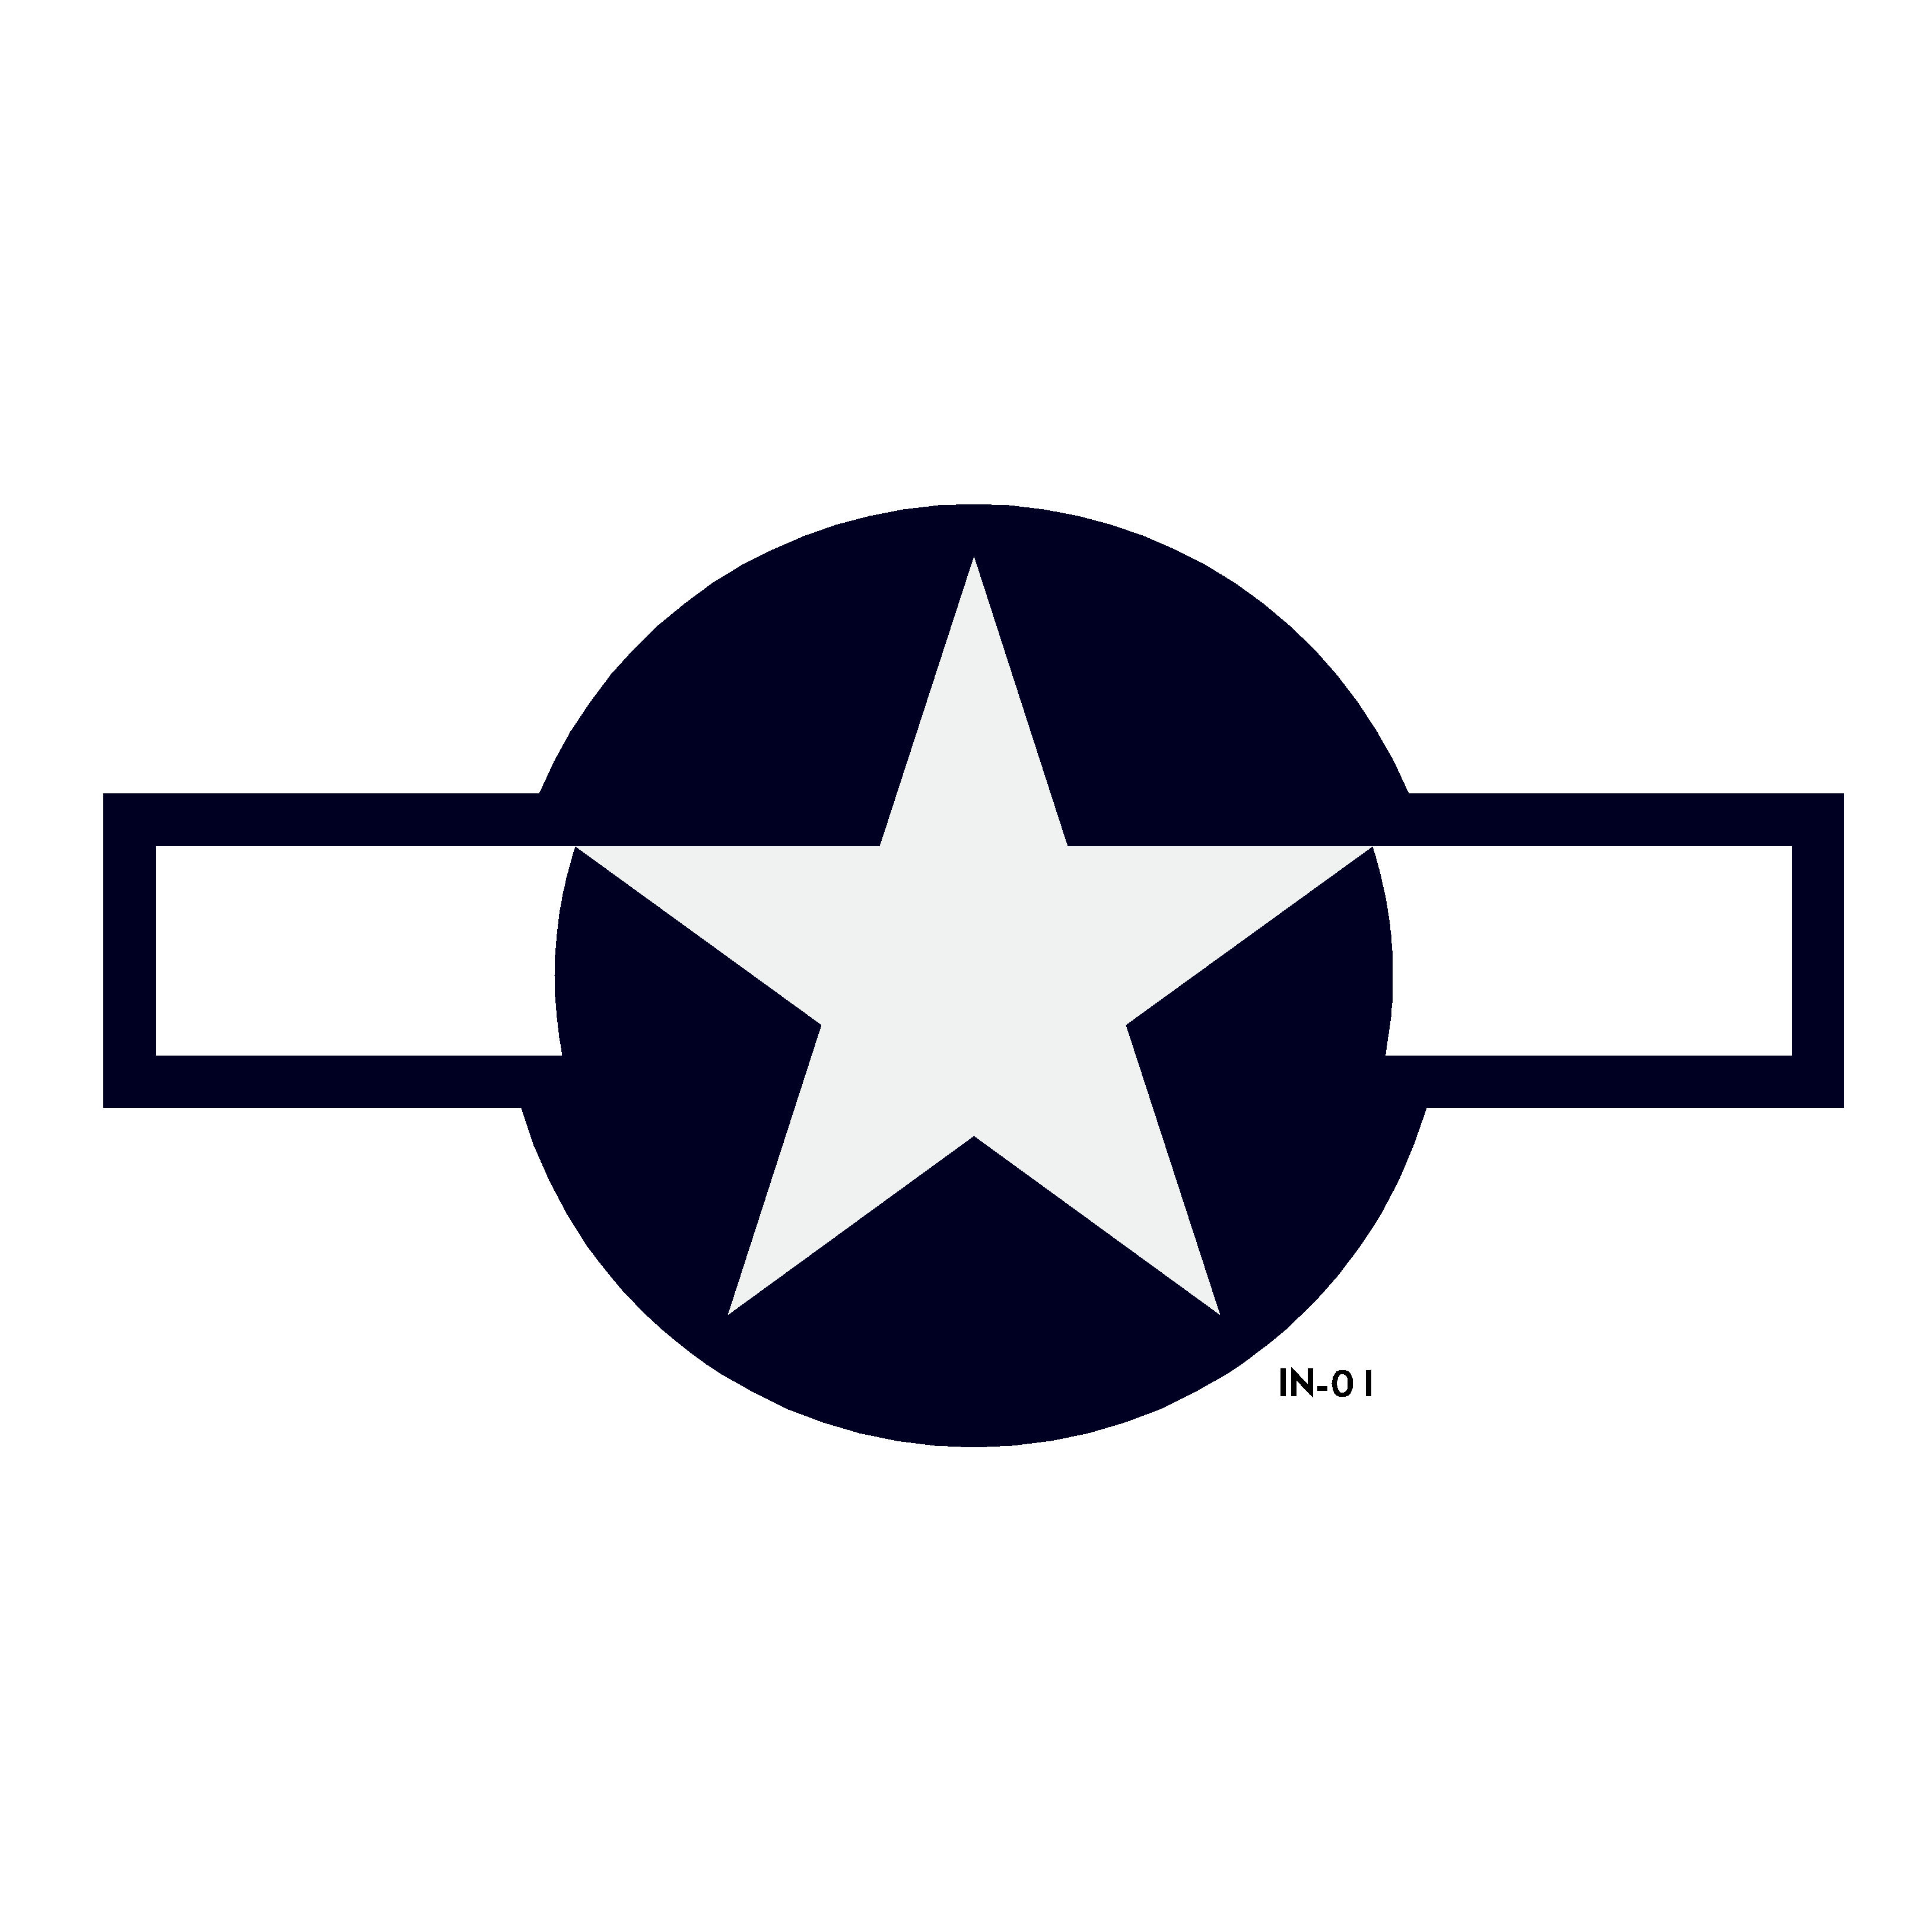 U.S. Army Air Force National Star and Bars Insignia - AN-I-9b